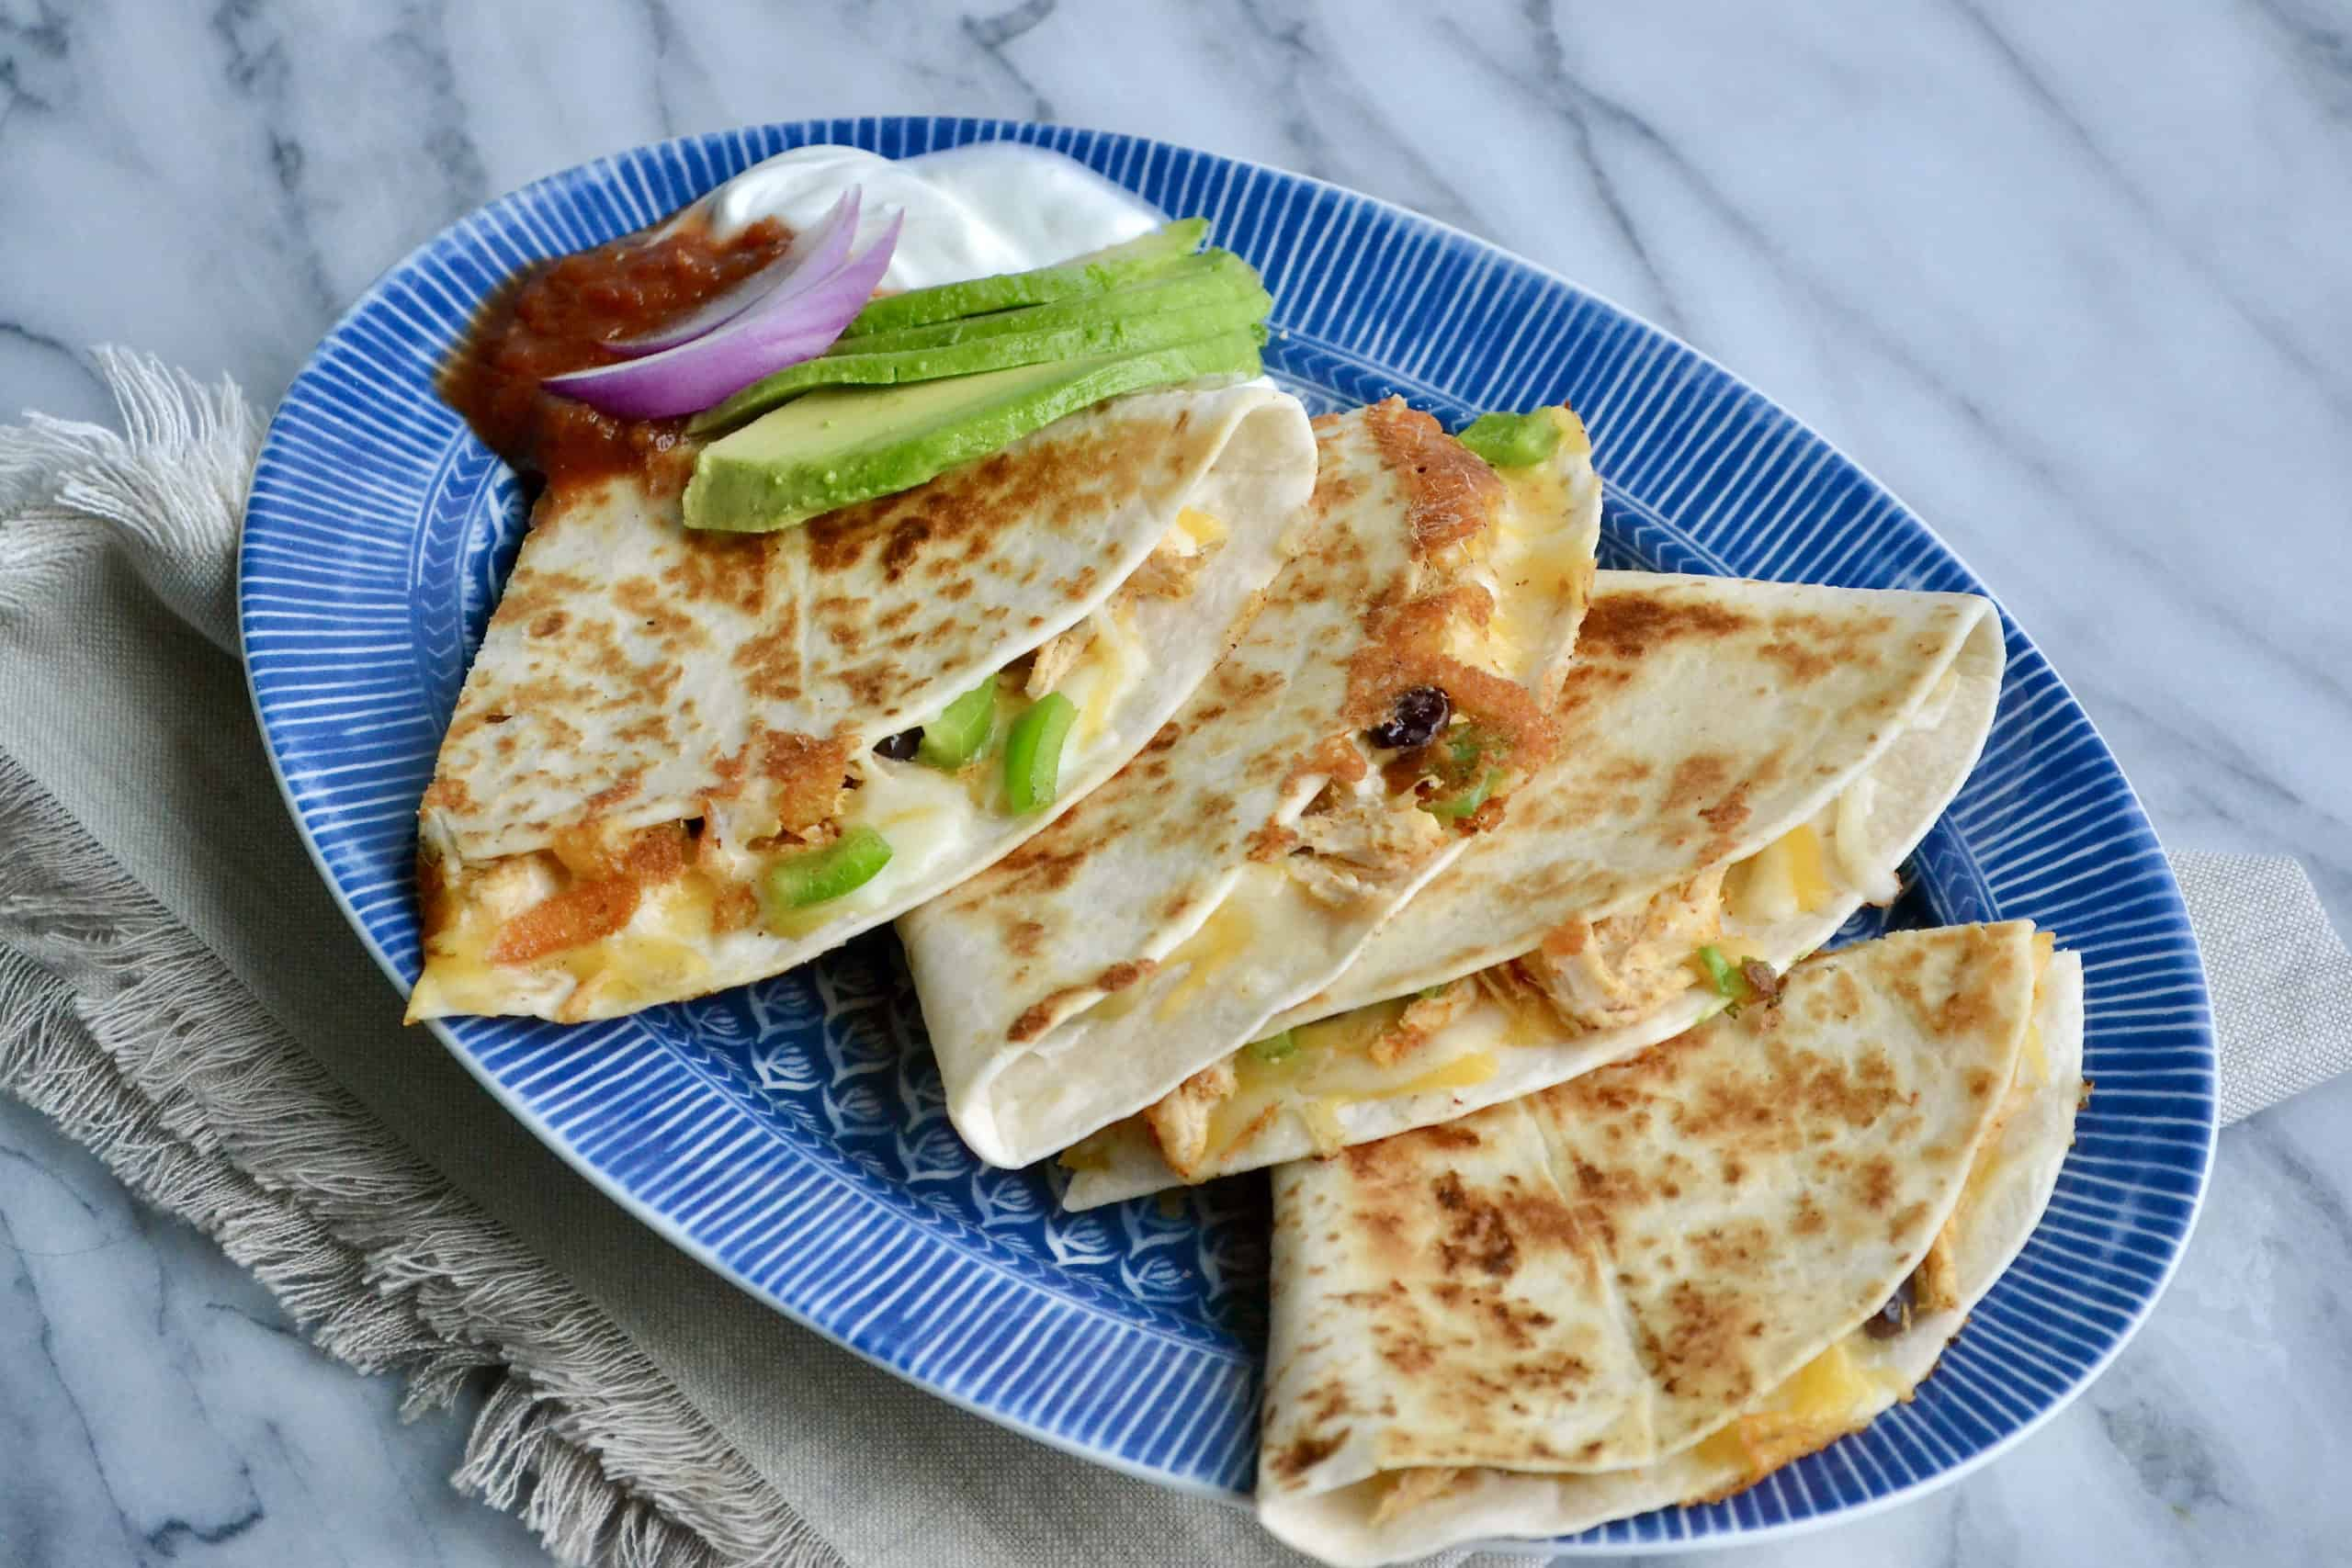 Blue plate holds two chicken quesadillas